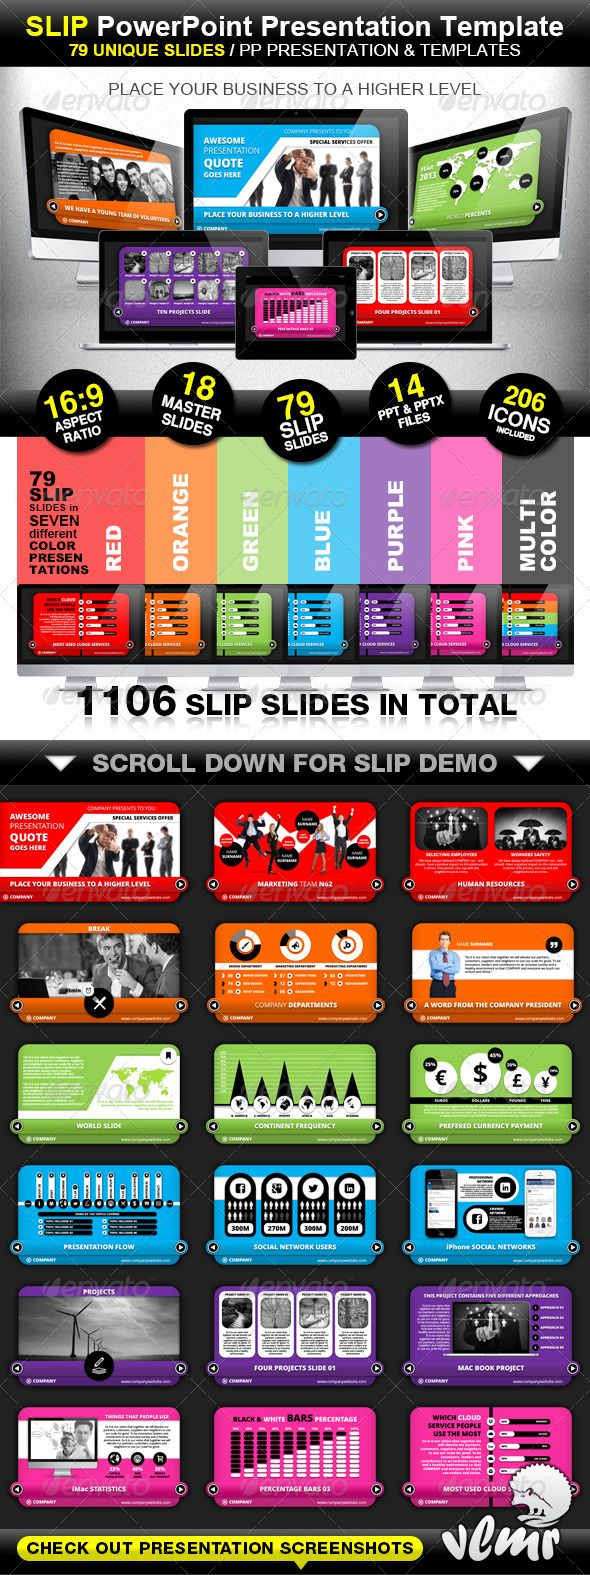 Presentation Templates - Slip Company PowerPoint Presentation Template | GraphicRiver